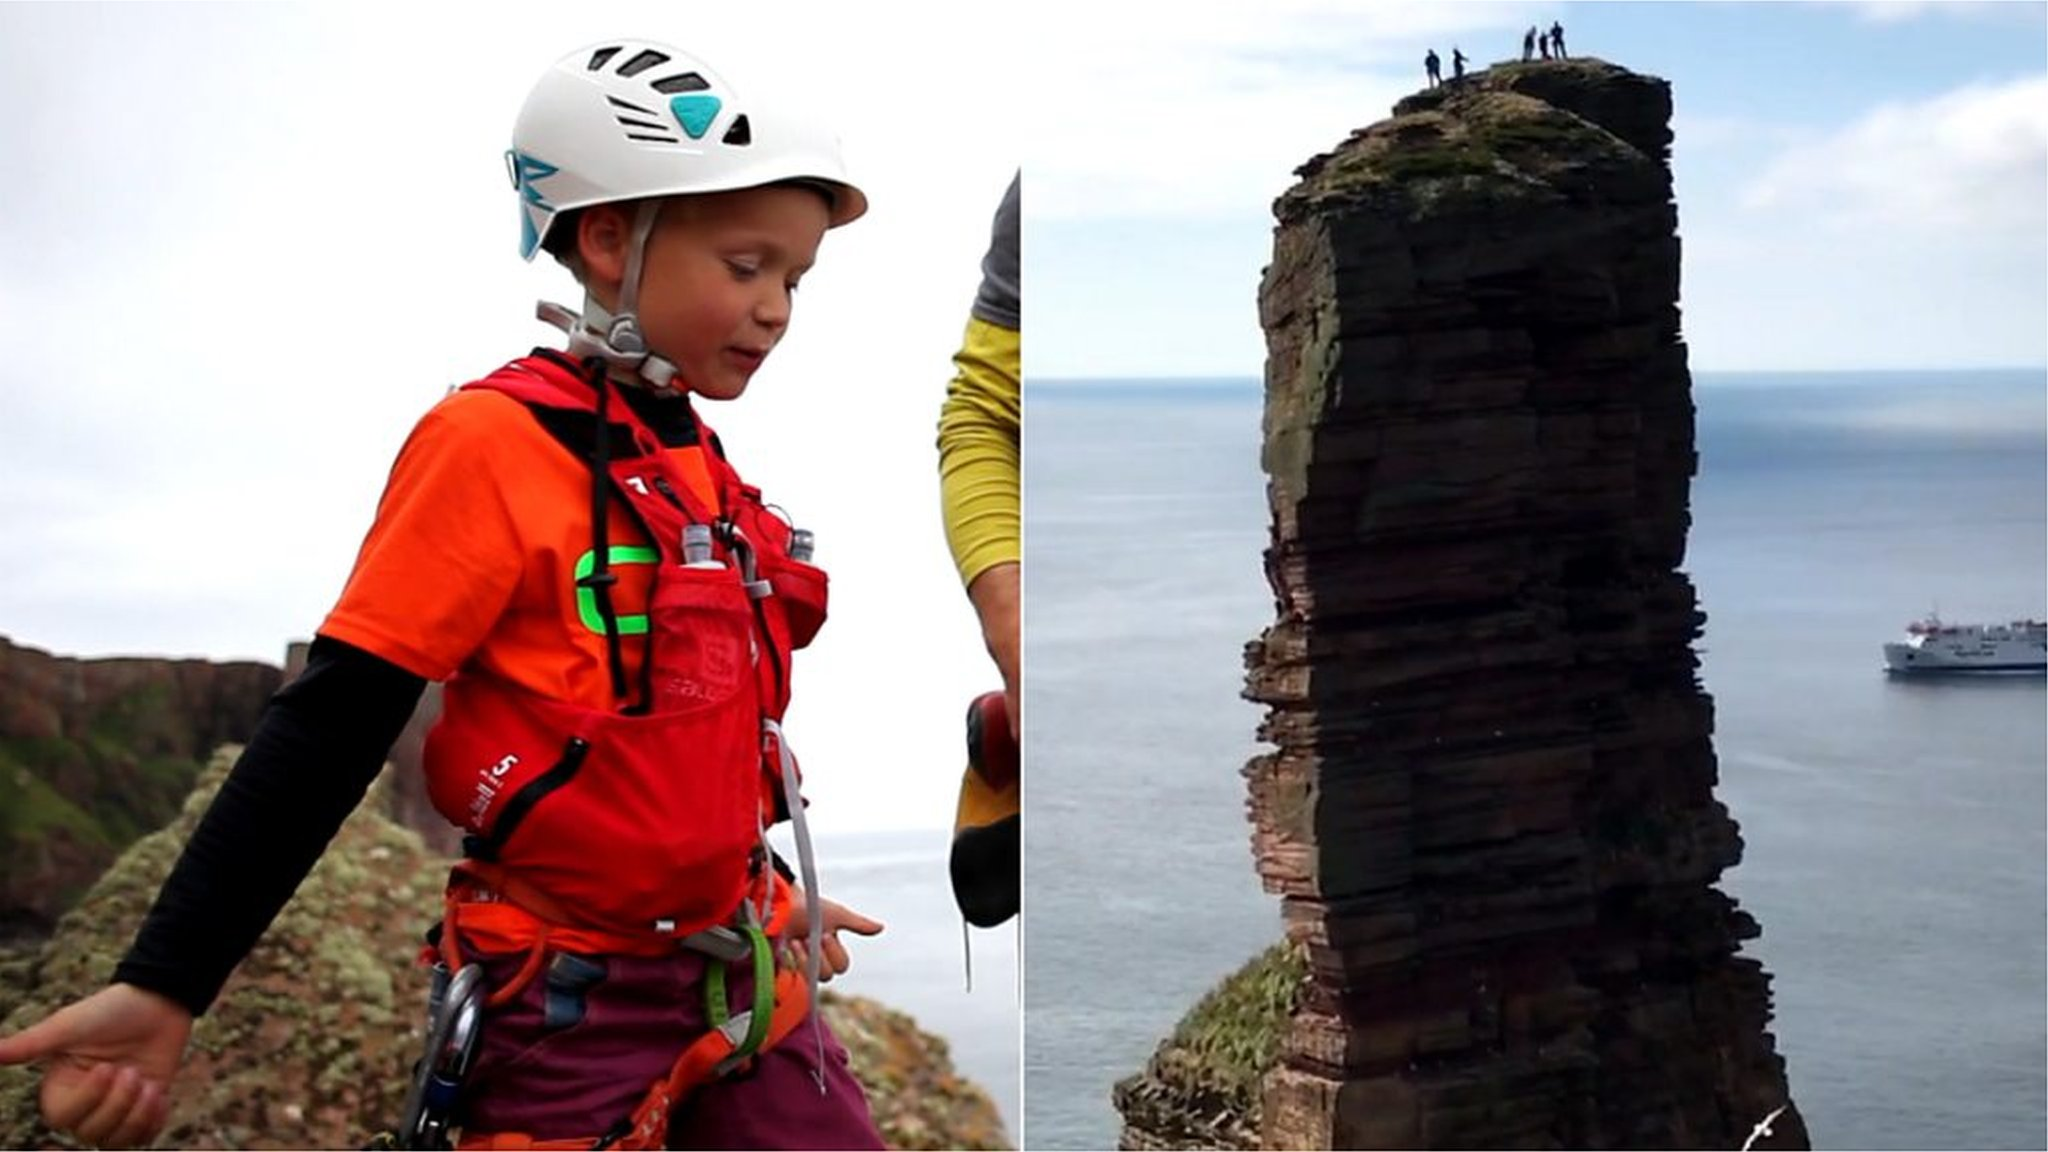 'I climbed this sea stack for my mum'